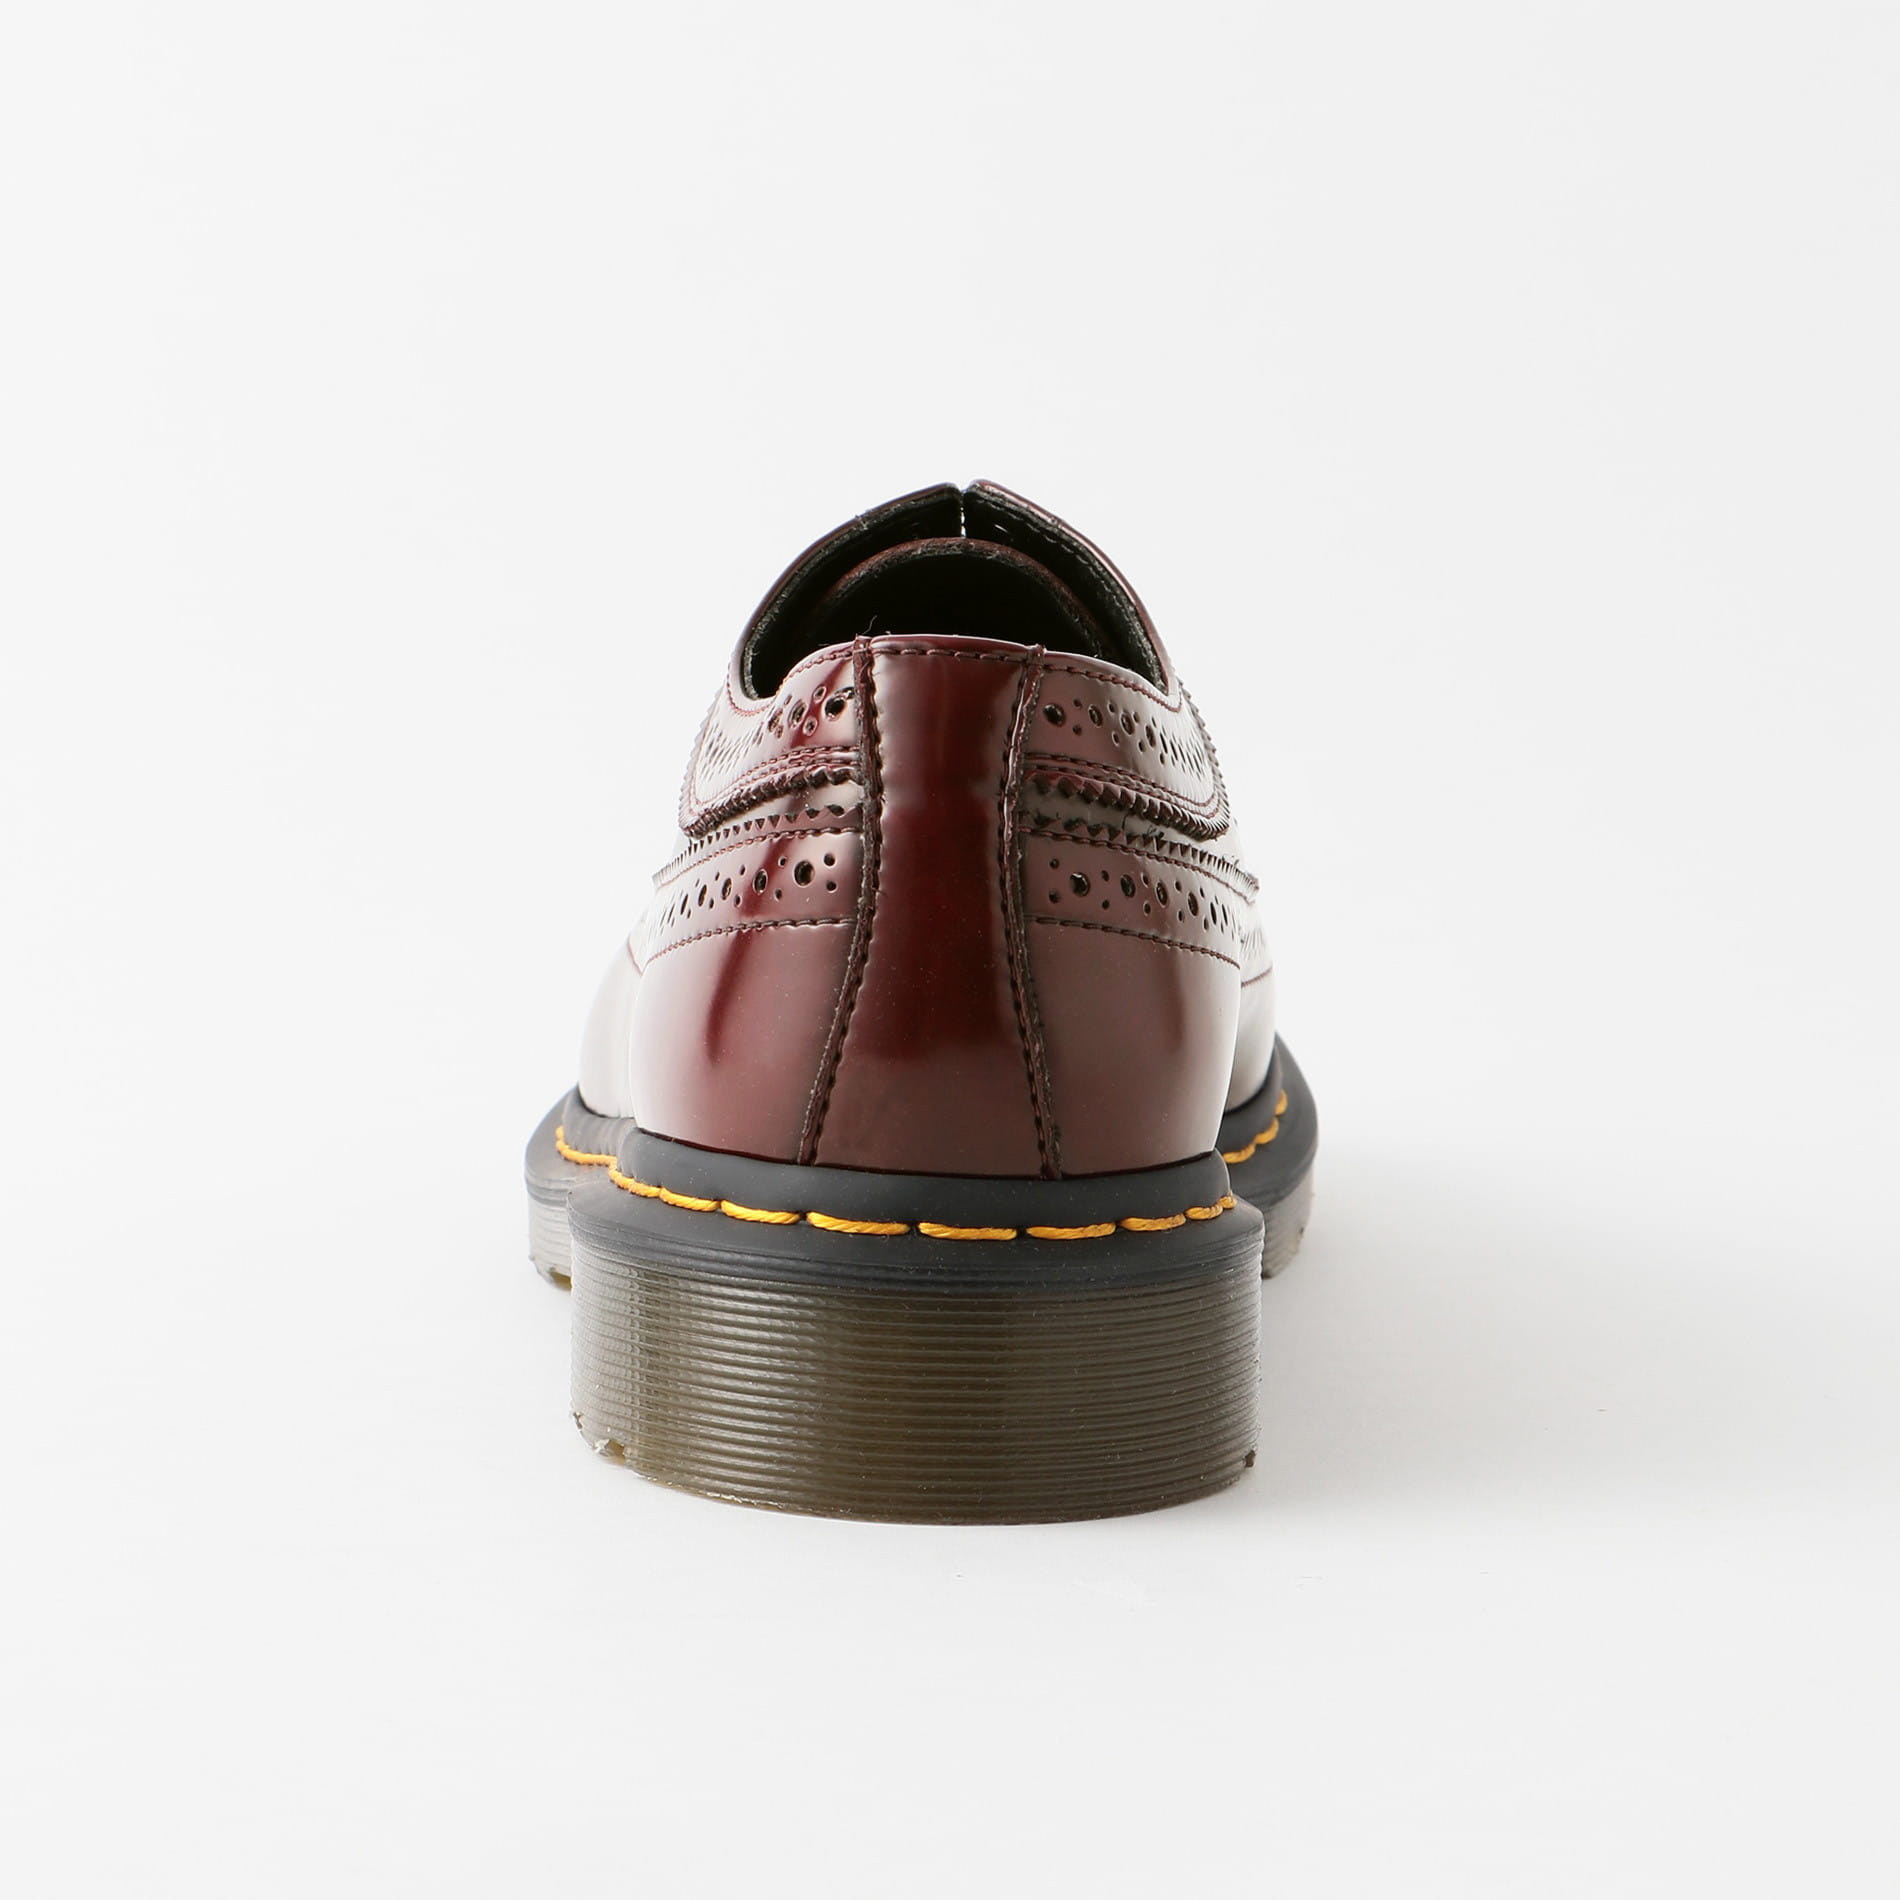 【Dr.Martens】MEN シュ−ズ VEGAN 3989 CAMBRIDGE BRUSH